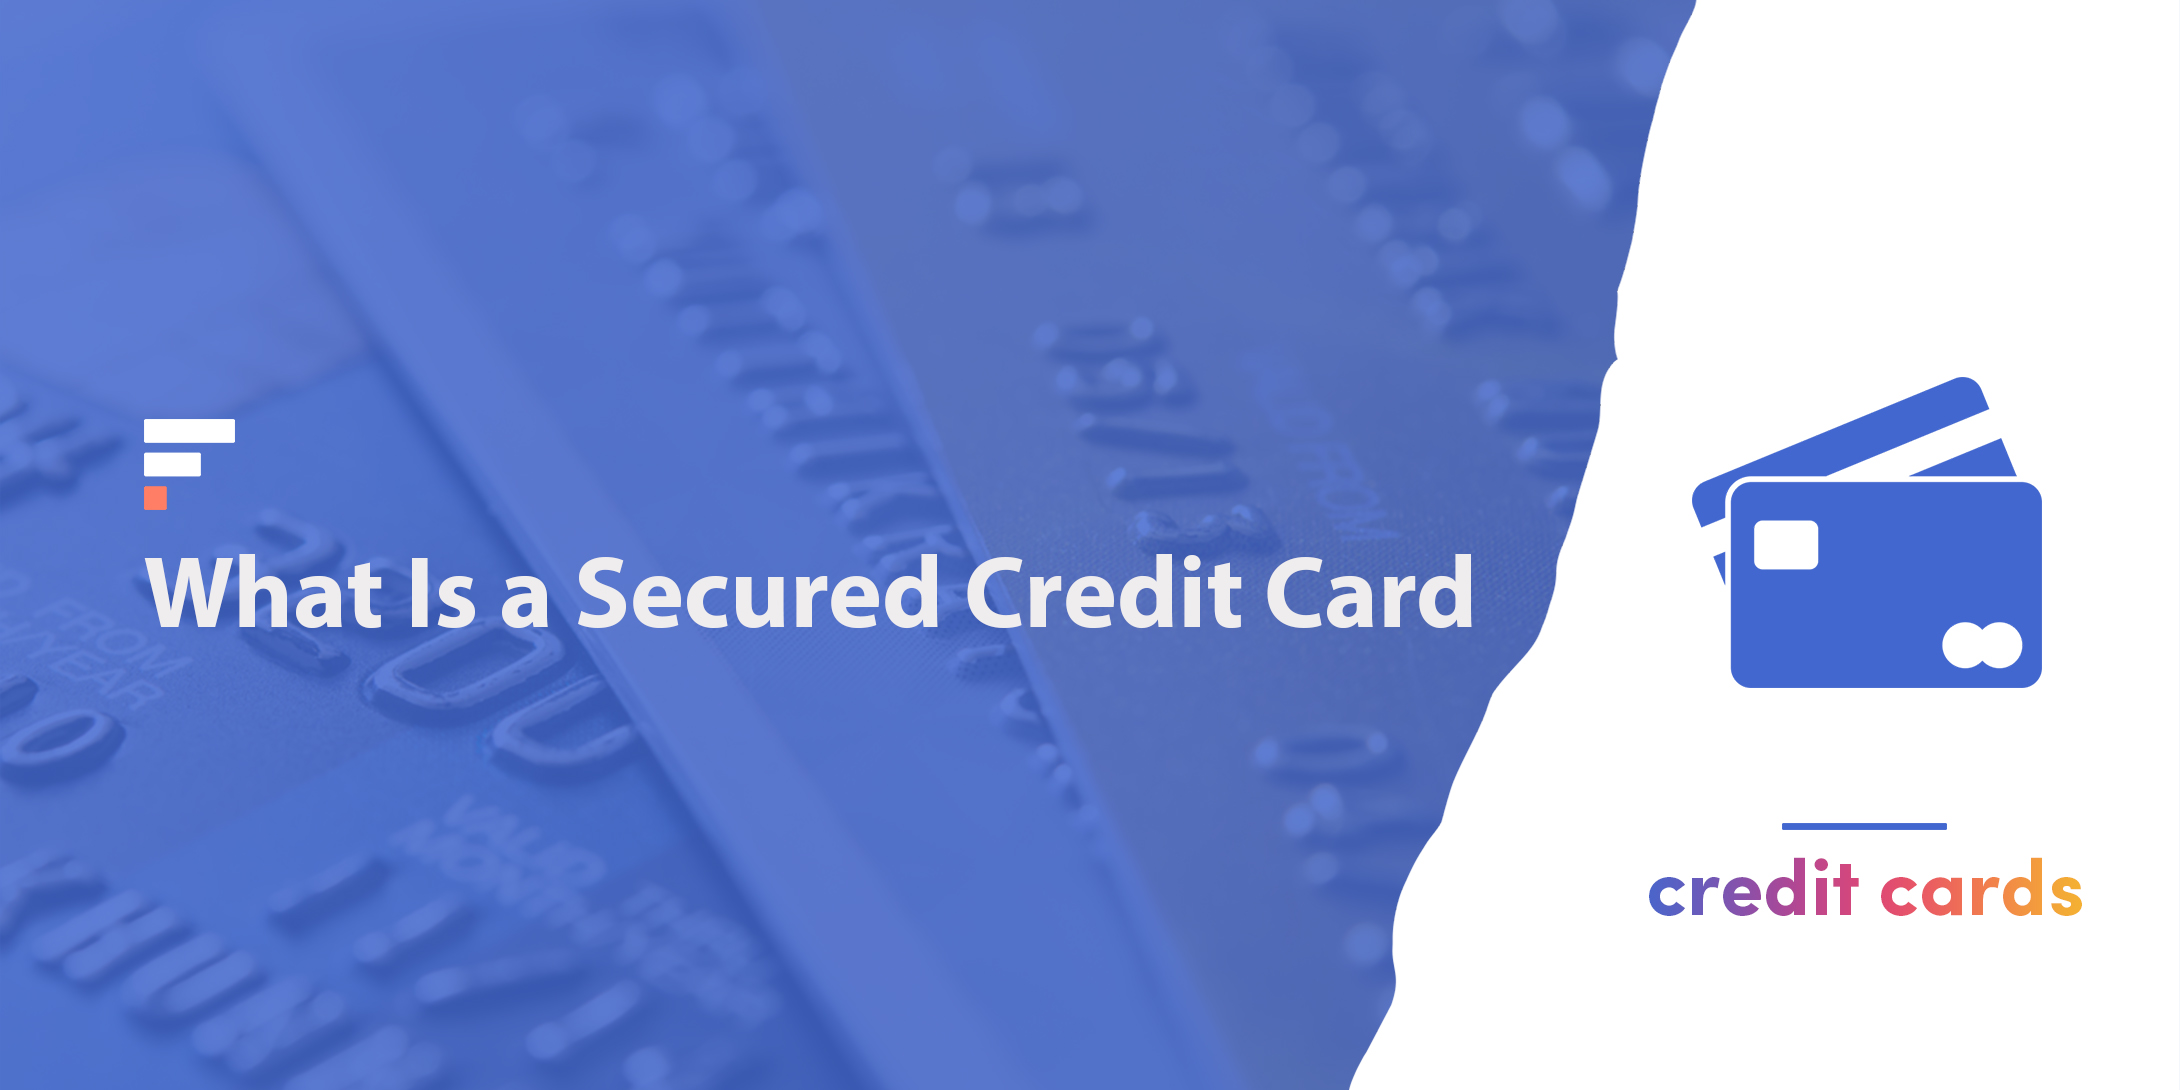 What Is a Secured Credit Card? The Definitive Guide for 2021